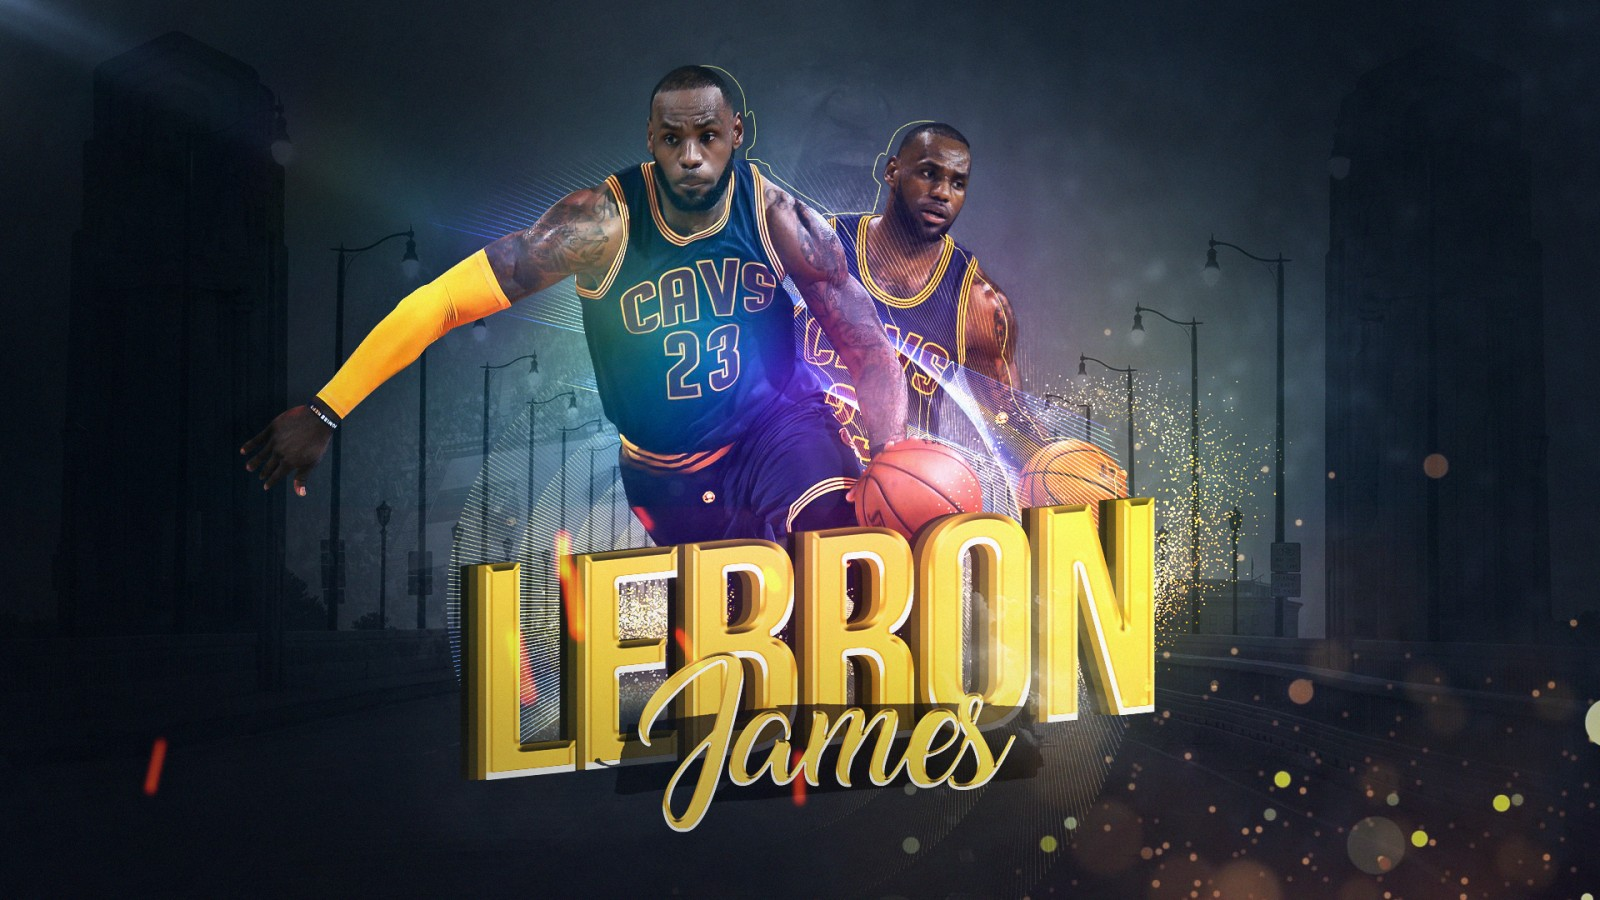 Wallpapers Wide Hd 1920x1080 Cars Lebron James Cavs 23 Hd Wallpapers Hd Wallpapers Id 22079